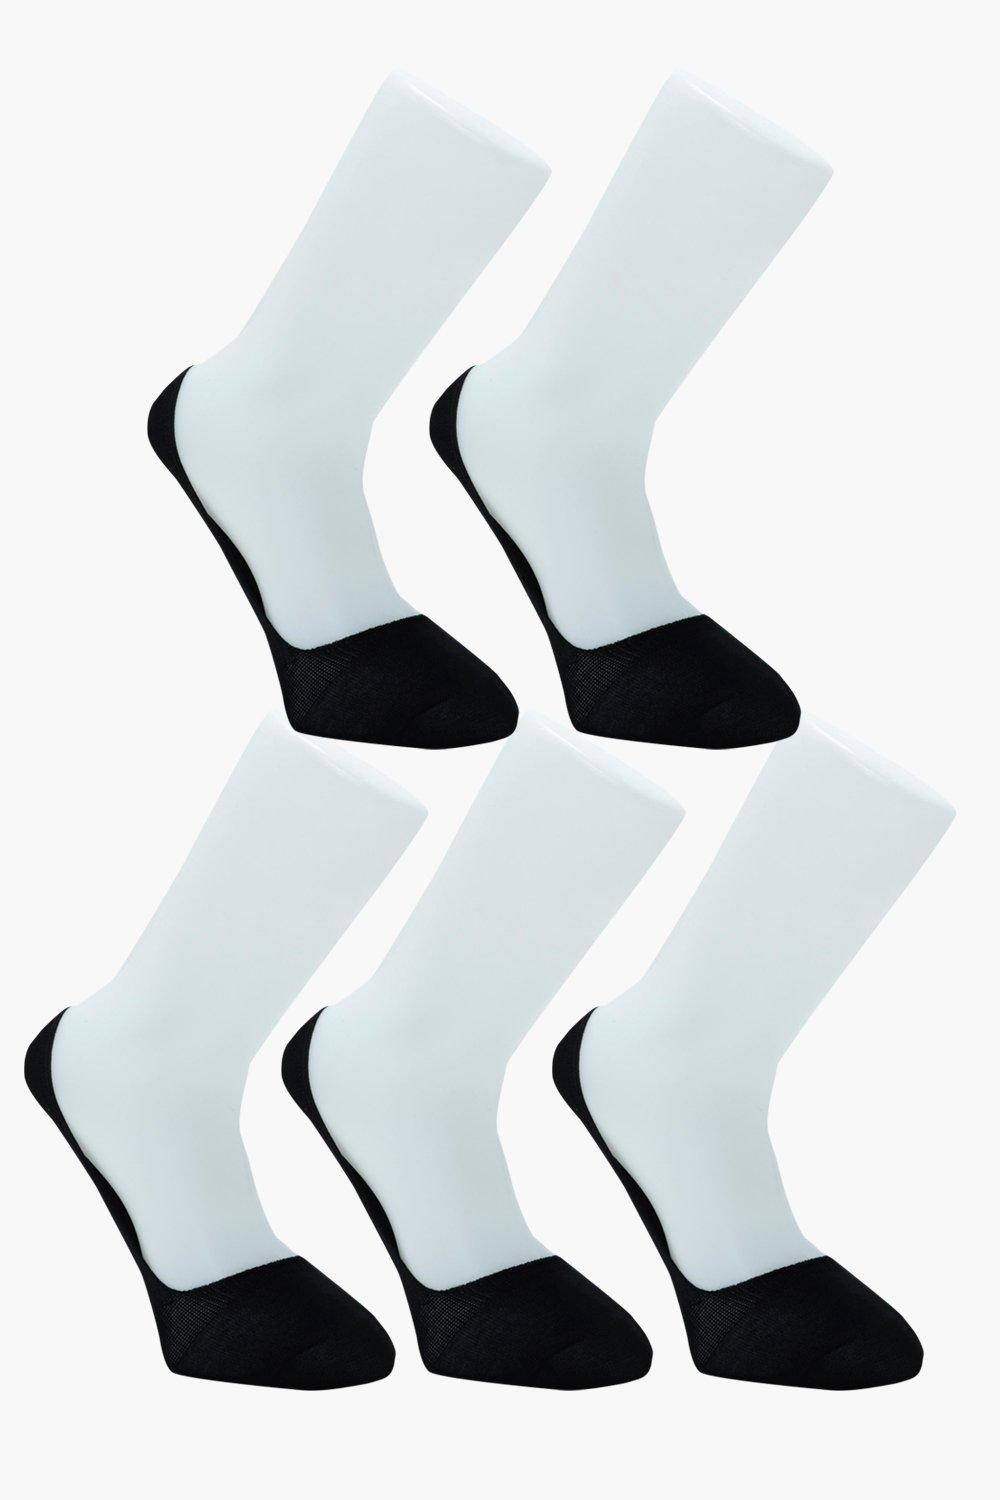 boohooMAN 5 Pack Invisible Black Socks With Grips